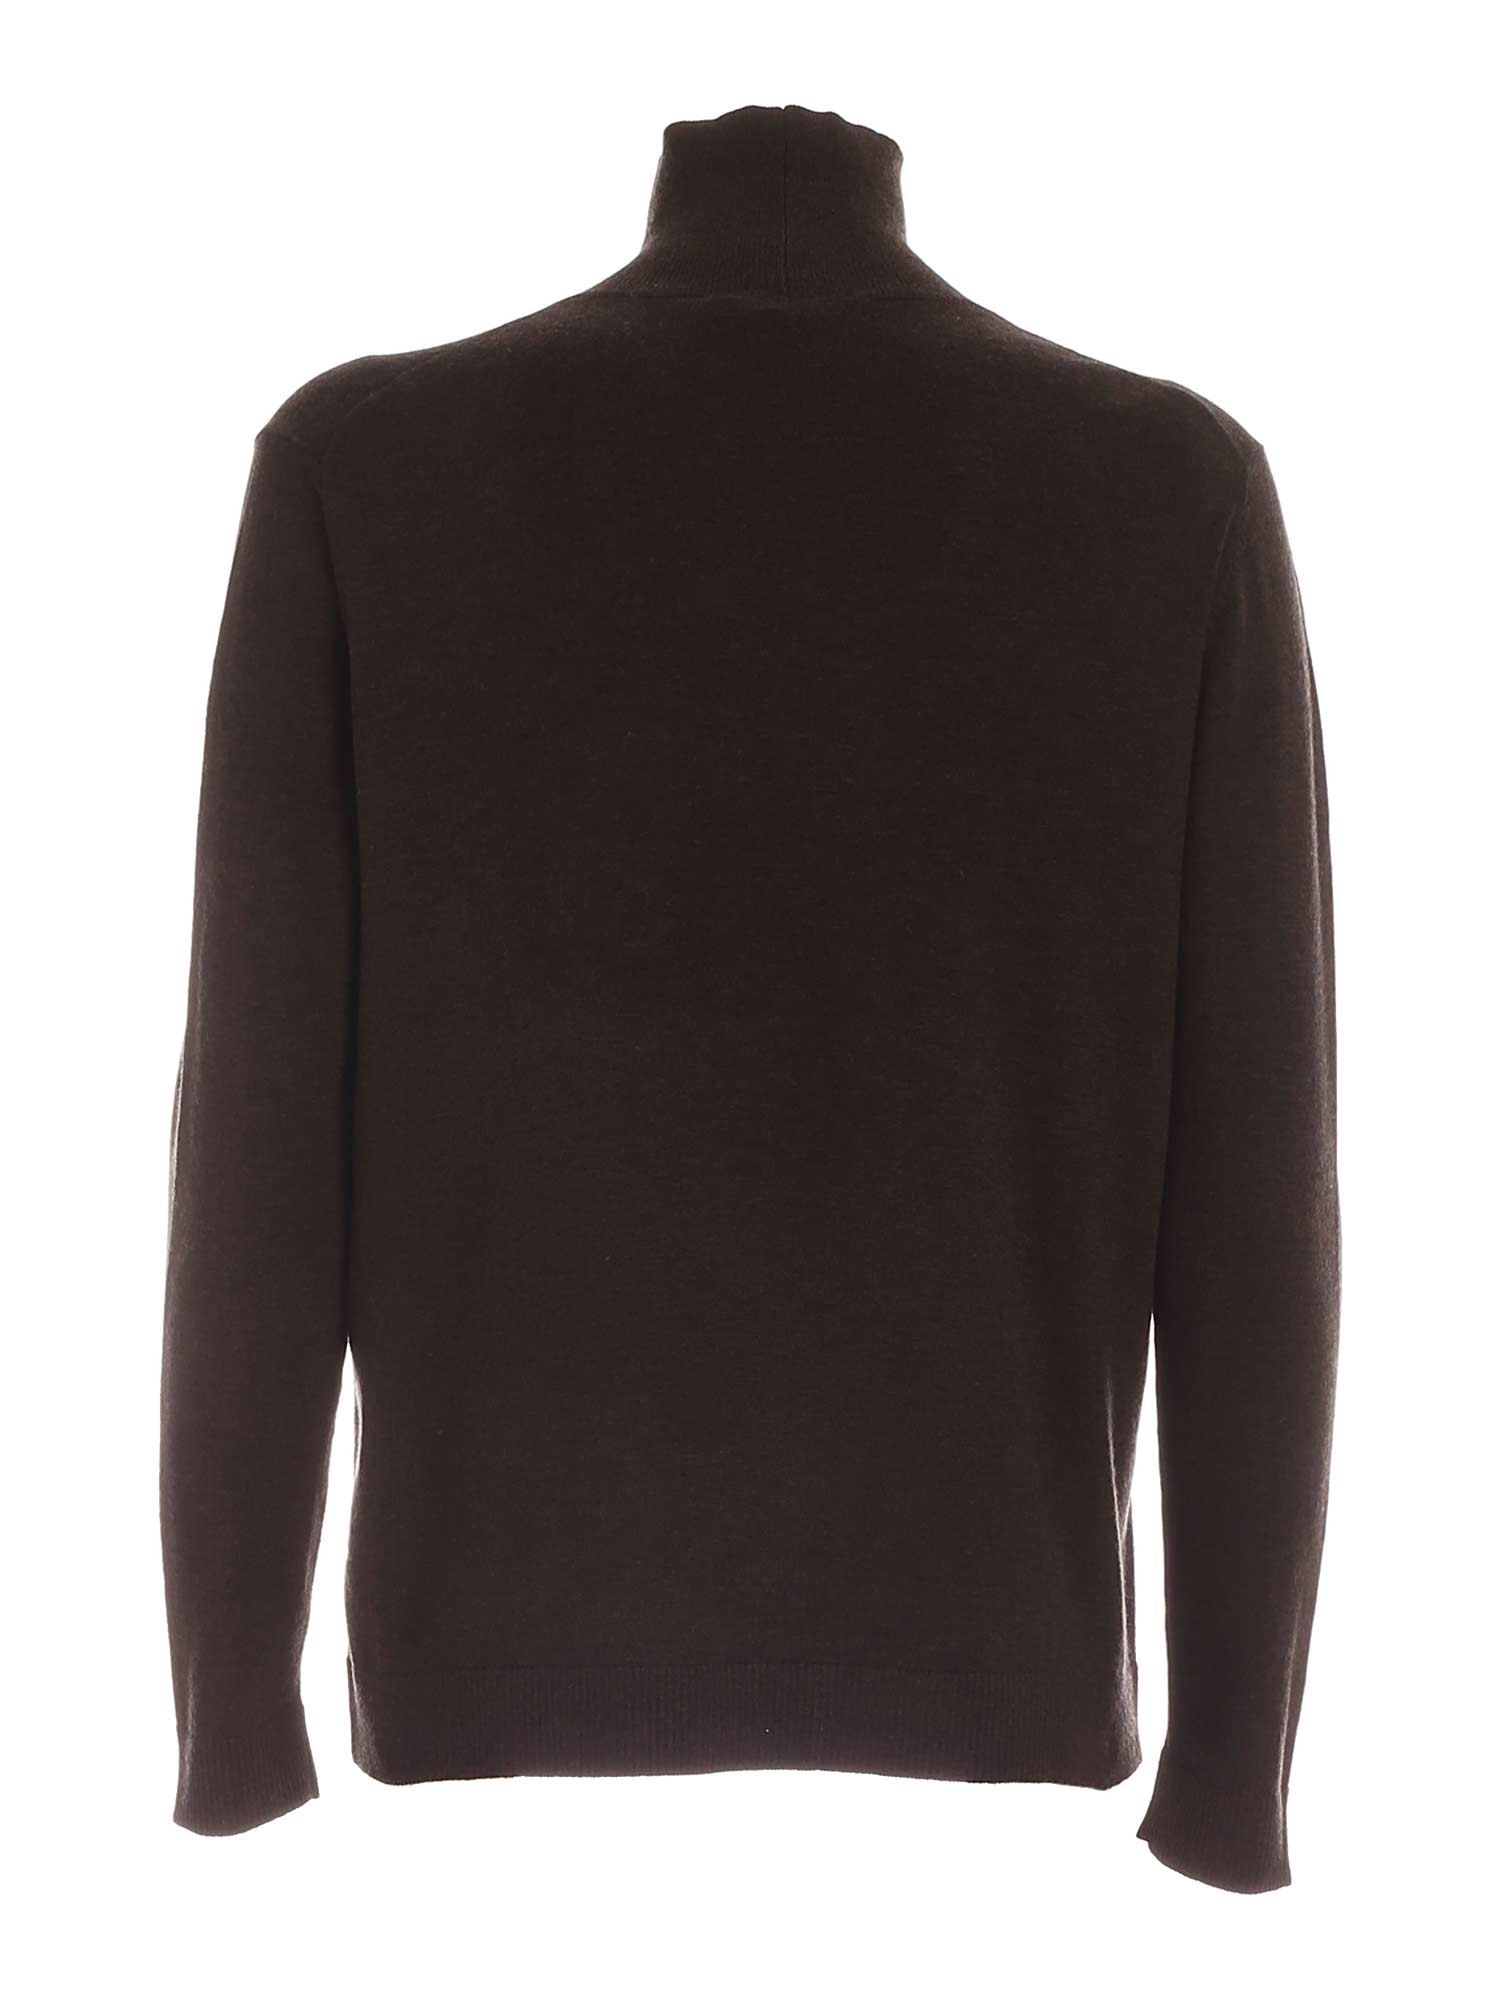 TURTLENECK IN SILK YARN AND WOOL MAX MARA WEEKEND | 10000016 | 53660103600MM12090006